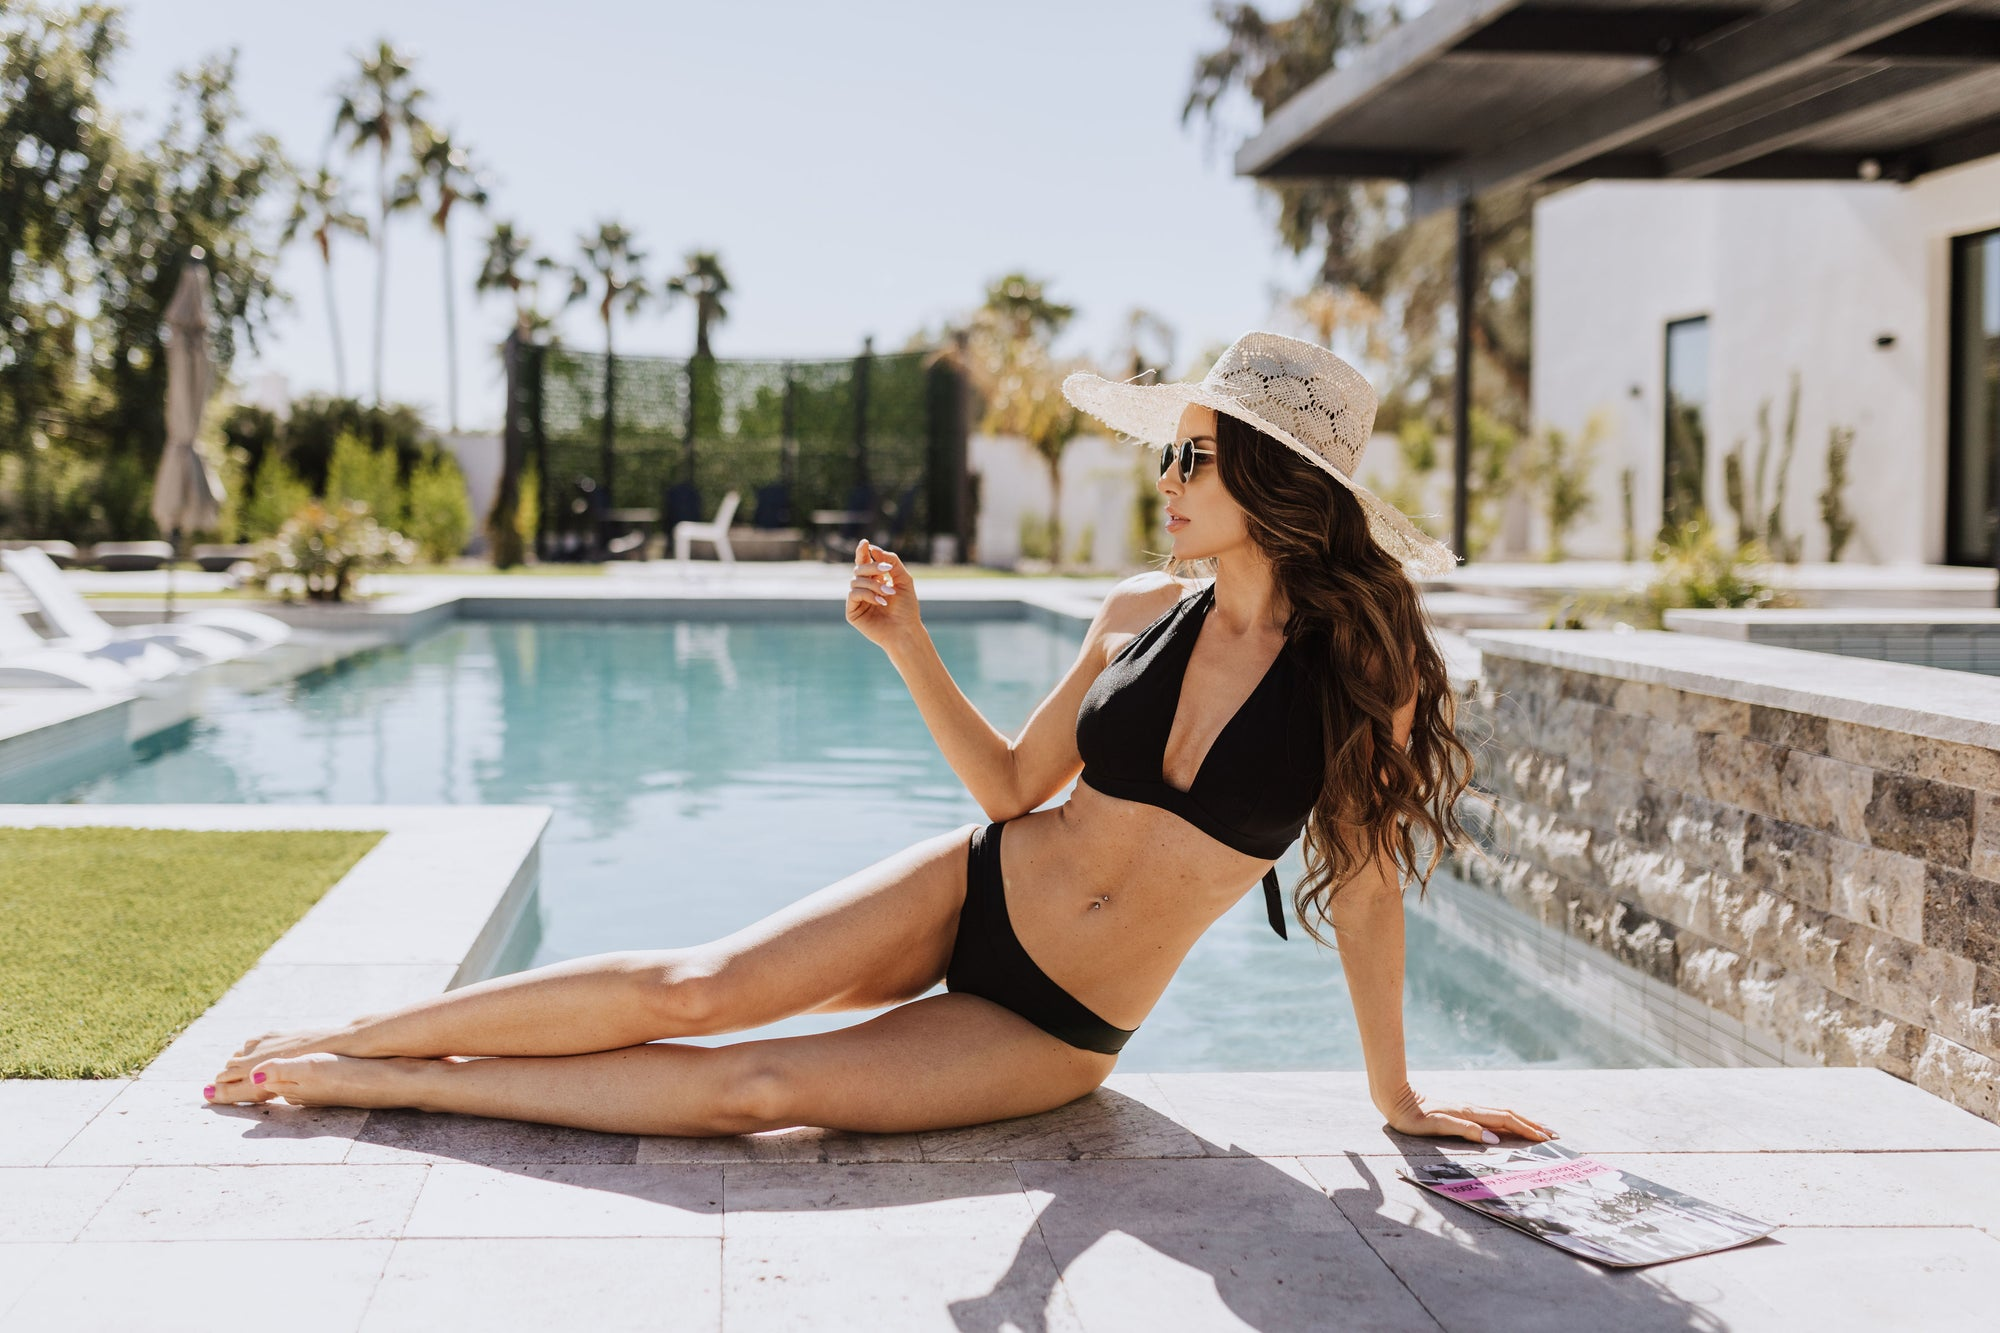 Thin brunette model posing by swimming pool wearing a black halter top bikini and matching bottoms with sunhat and sunglasses